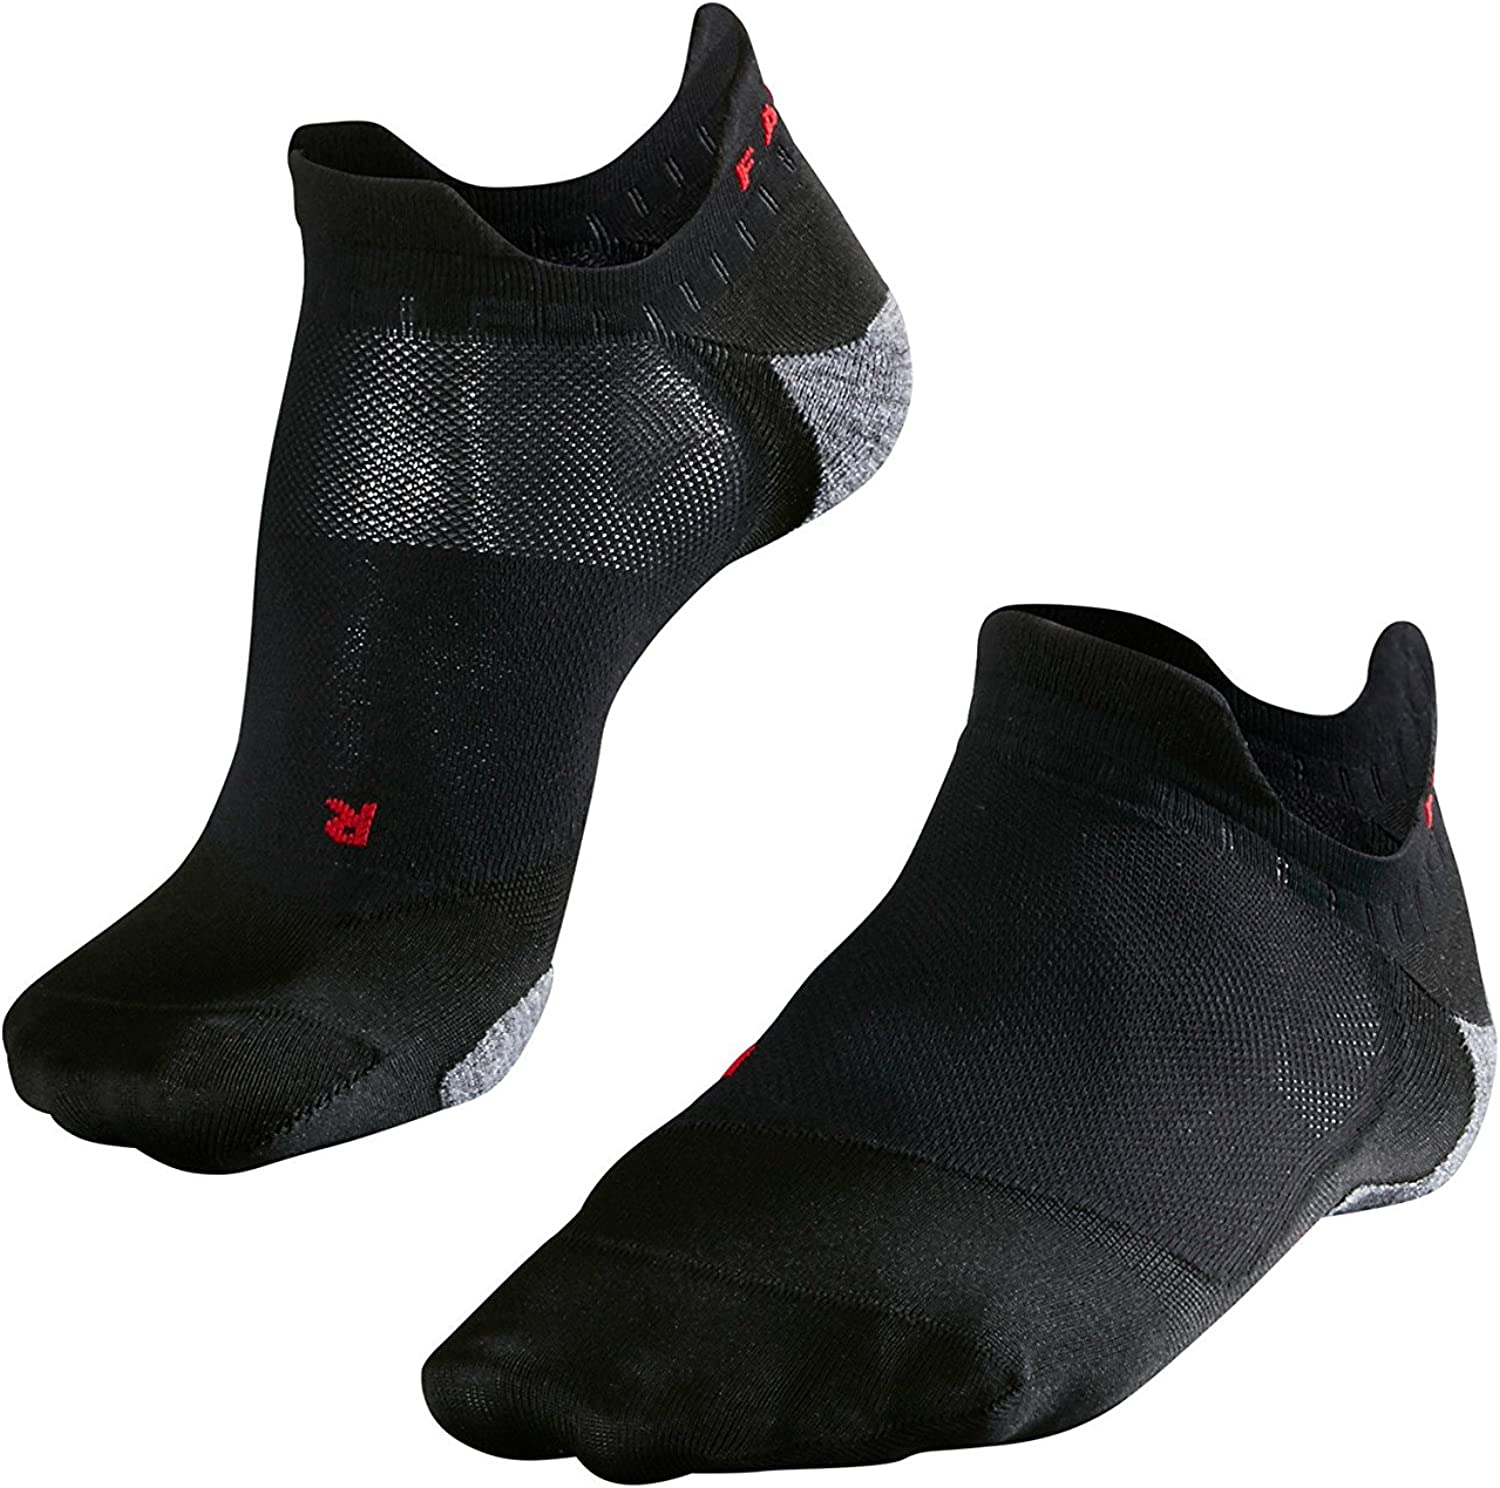 FALKE Mens RU5 Invisible Running Socks - No Show, Anti Blister, Cushioned, In Black or White, US sizes 6.5 to 13.5, 1 Pair